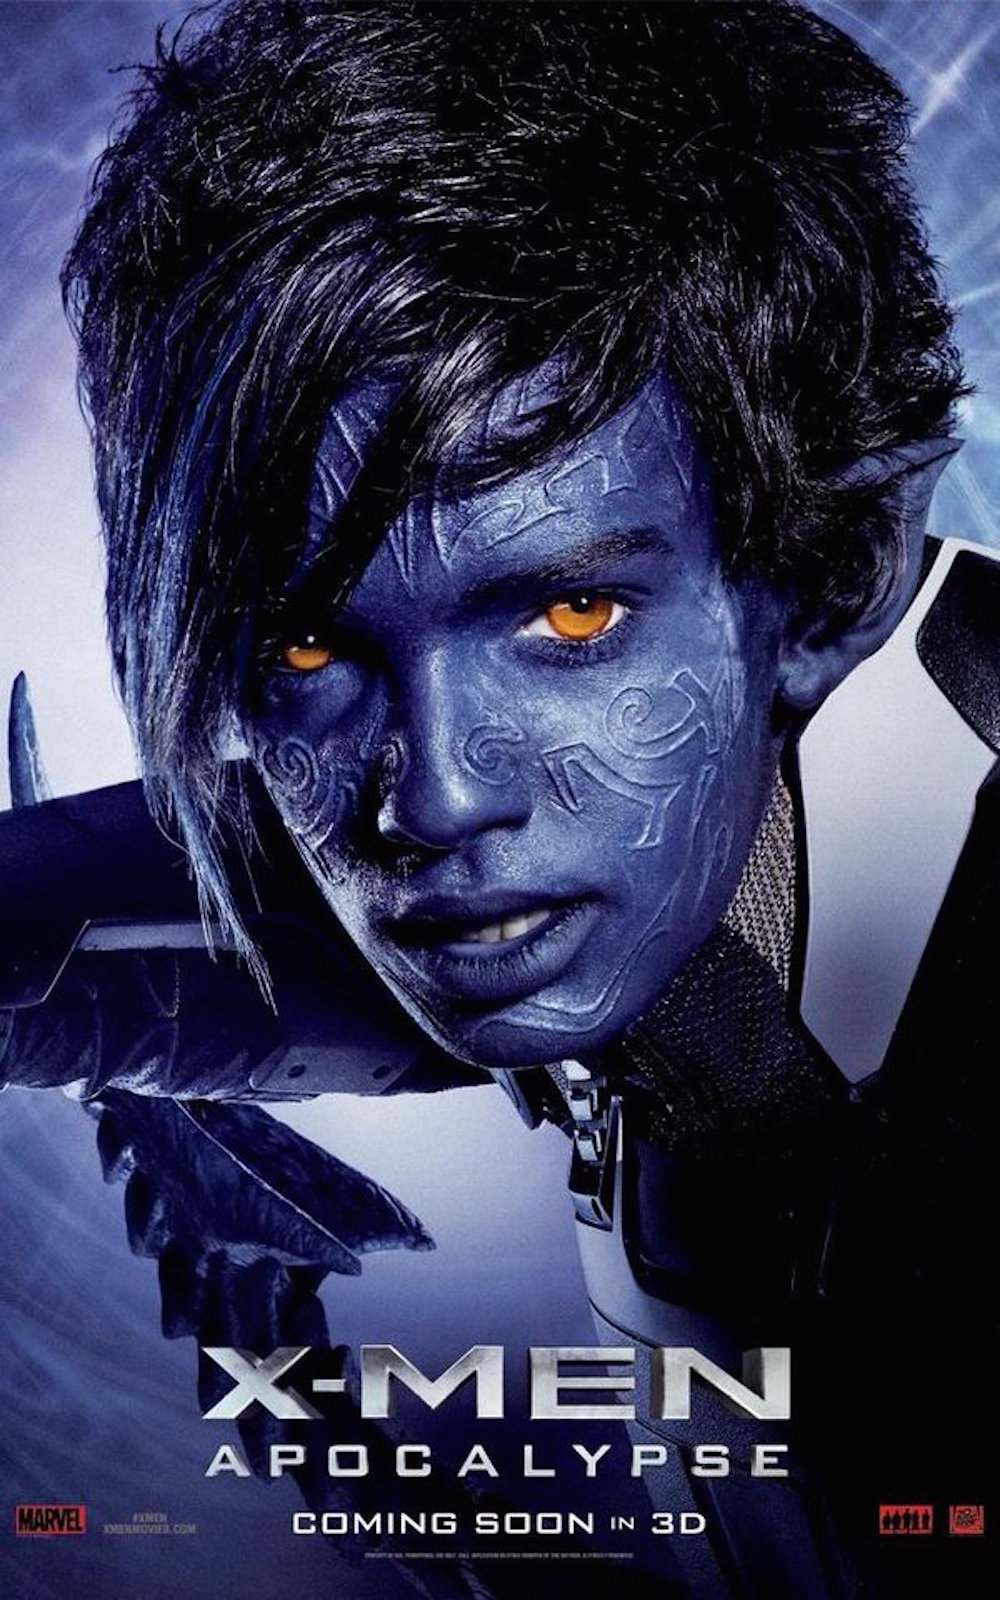 X men apocalypse poster nightcrawler